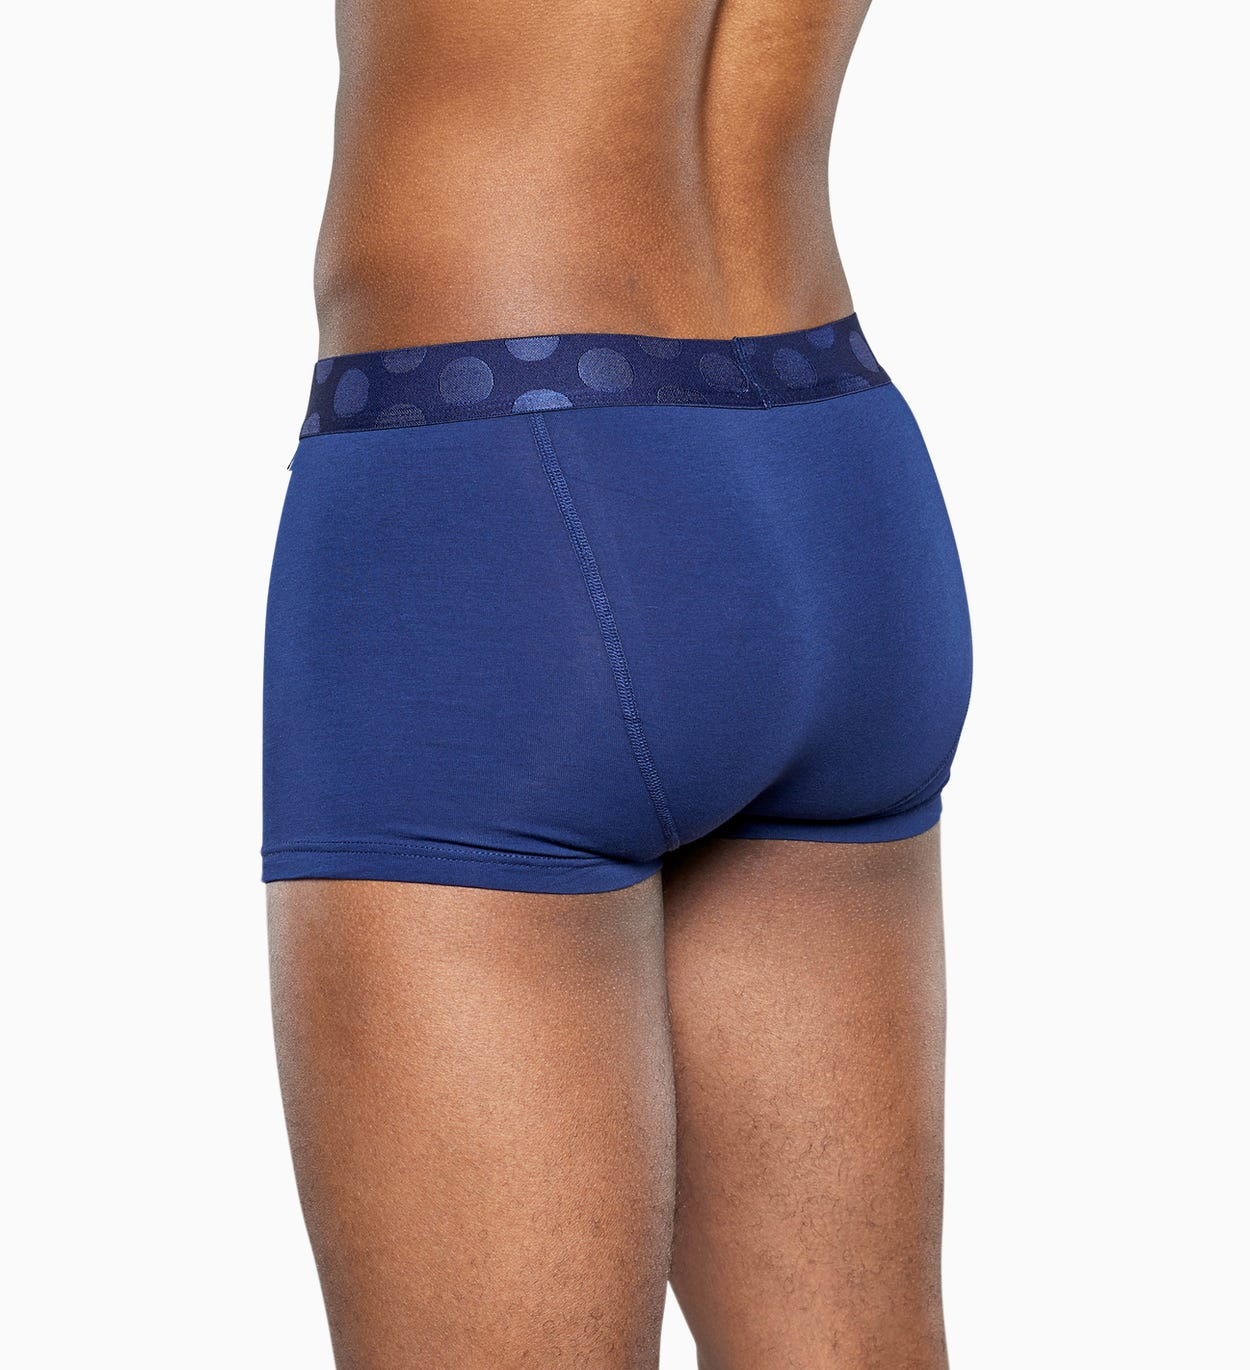 Blue trunk: Solid - Men's Underwear 3pc | Happy Socks